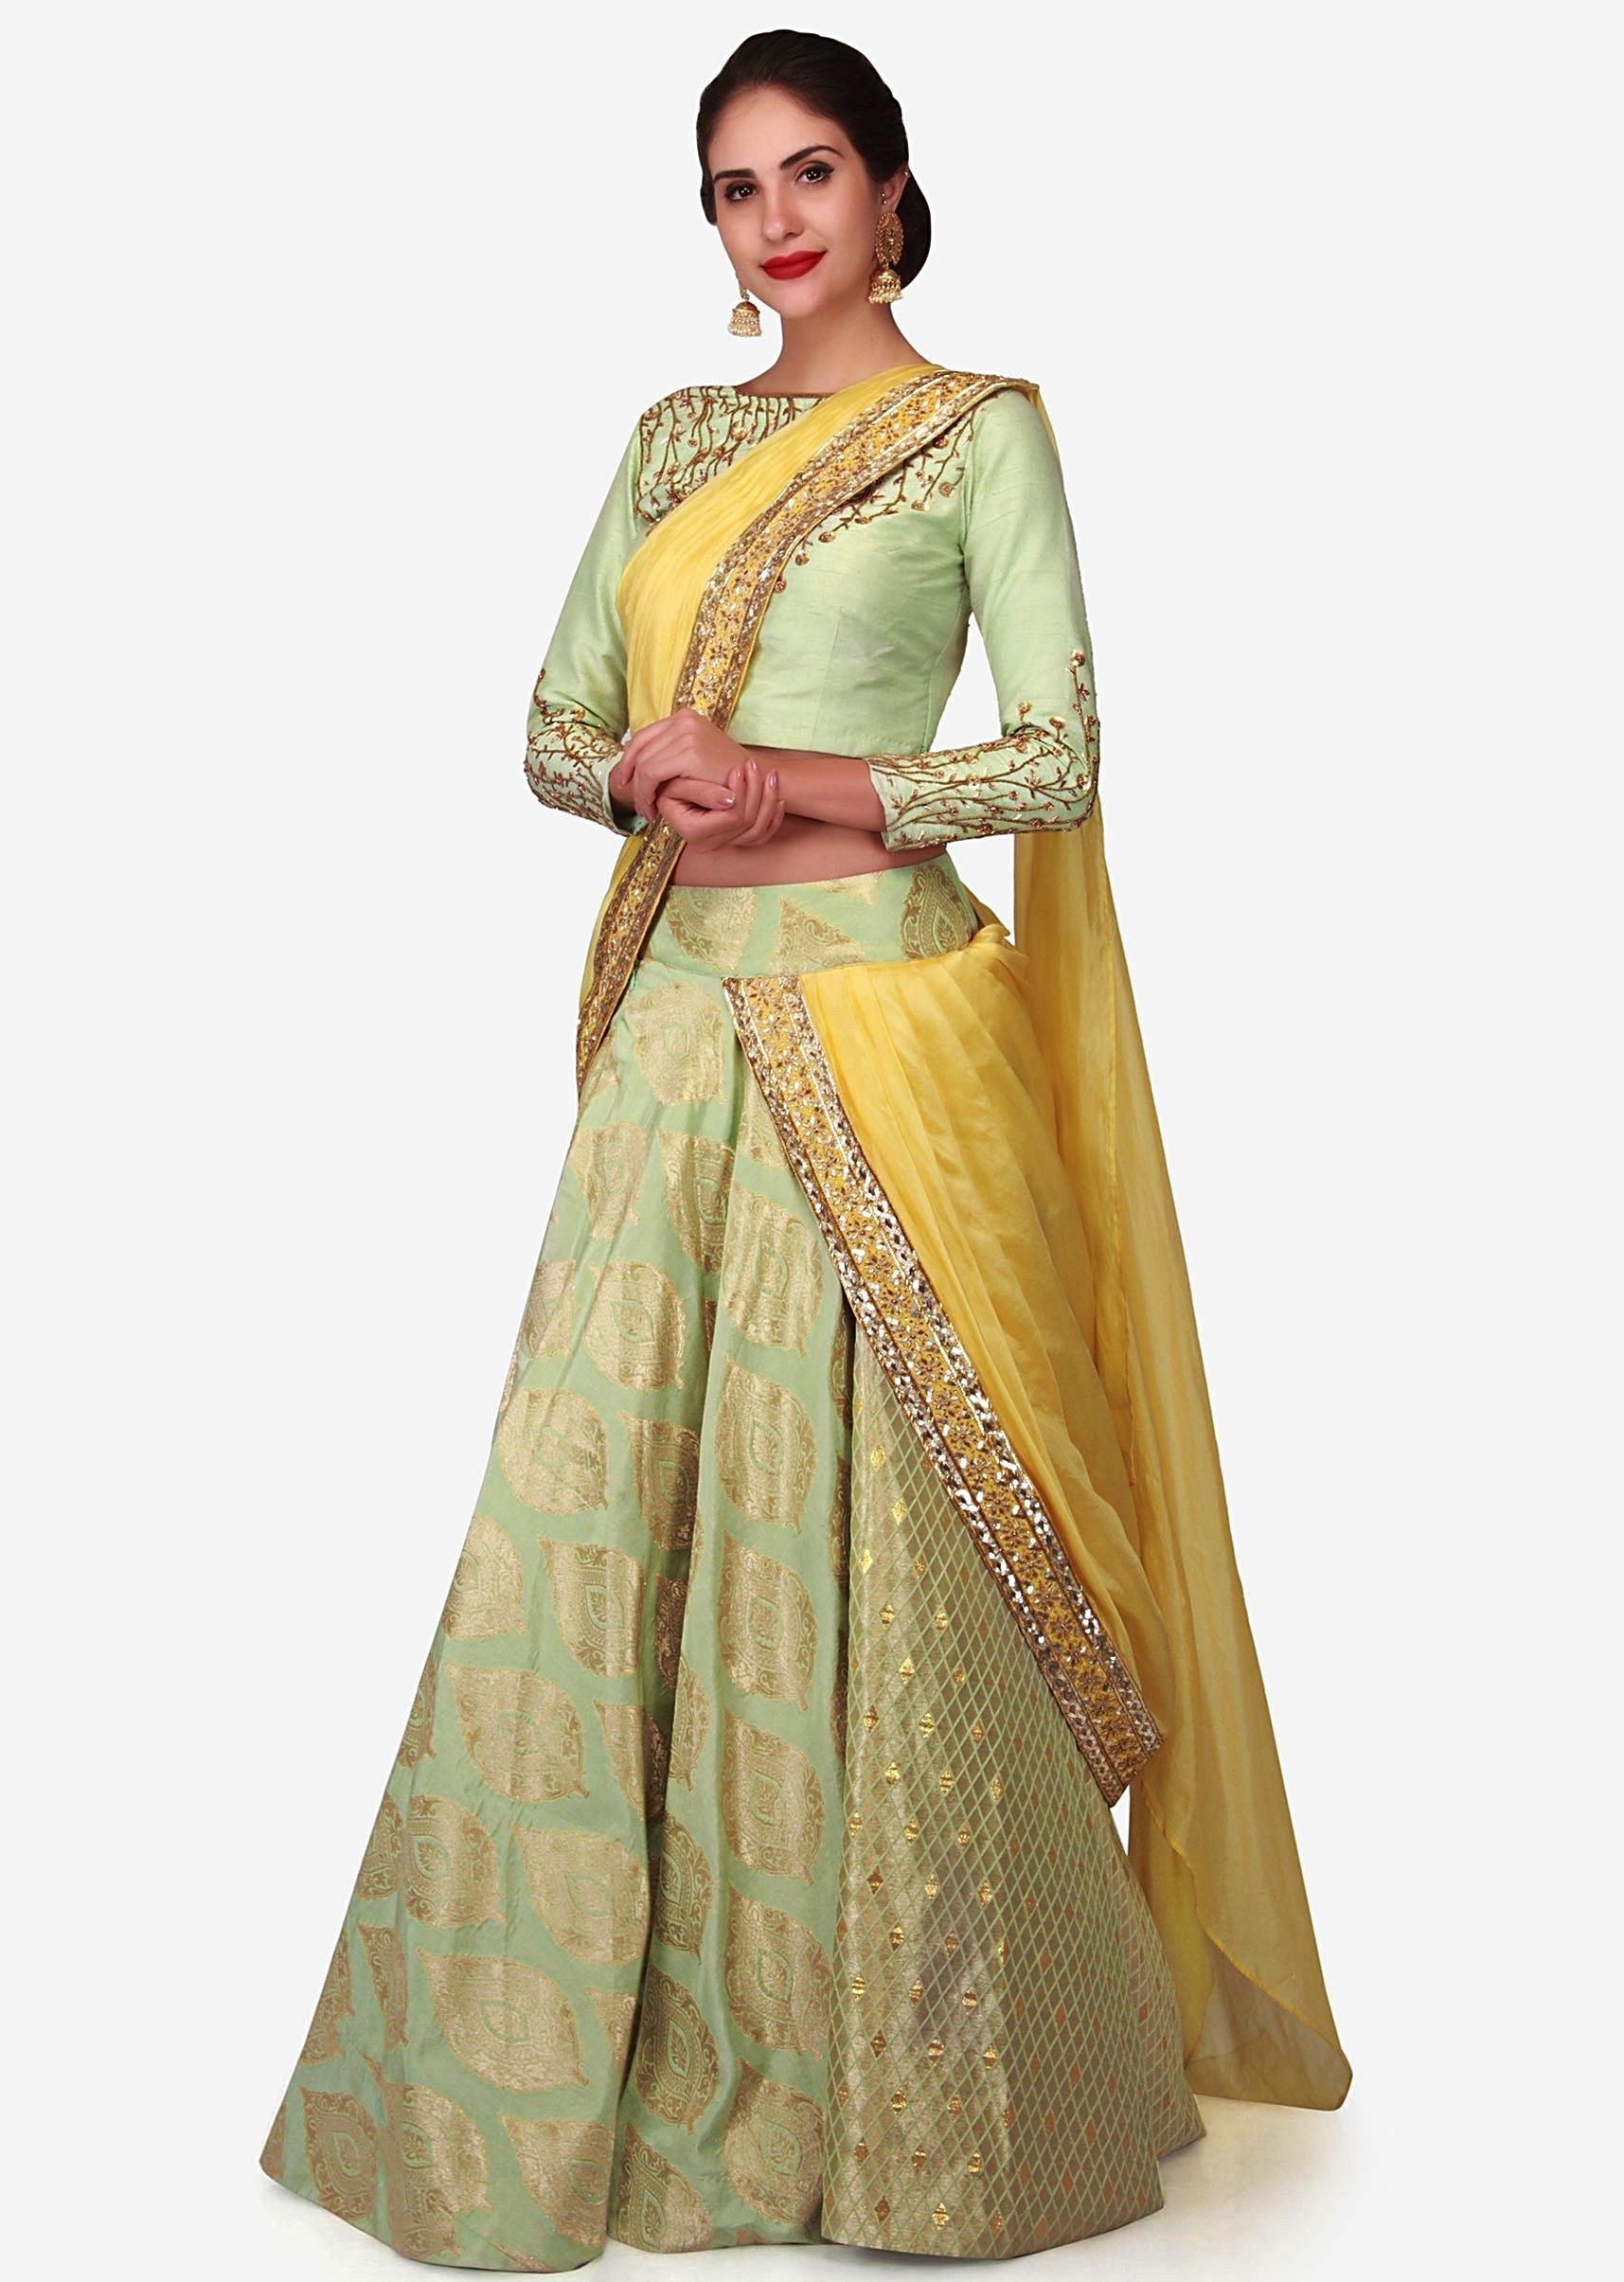 d9be50df25 Light green brocade lehenga with a ready styled dupatta in yellow only on  Kalki